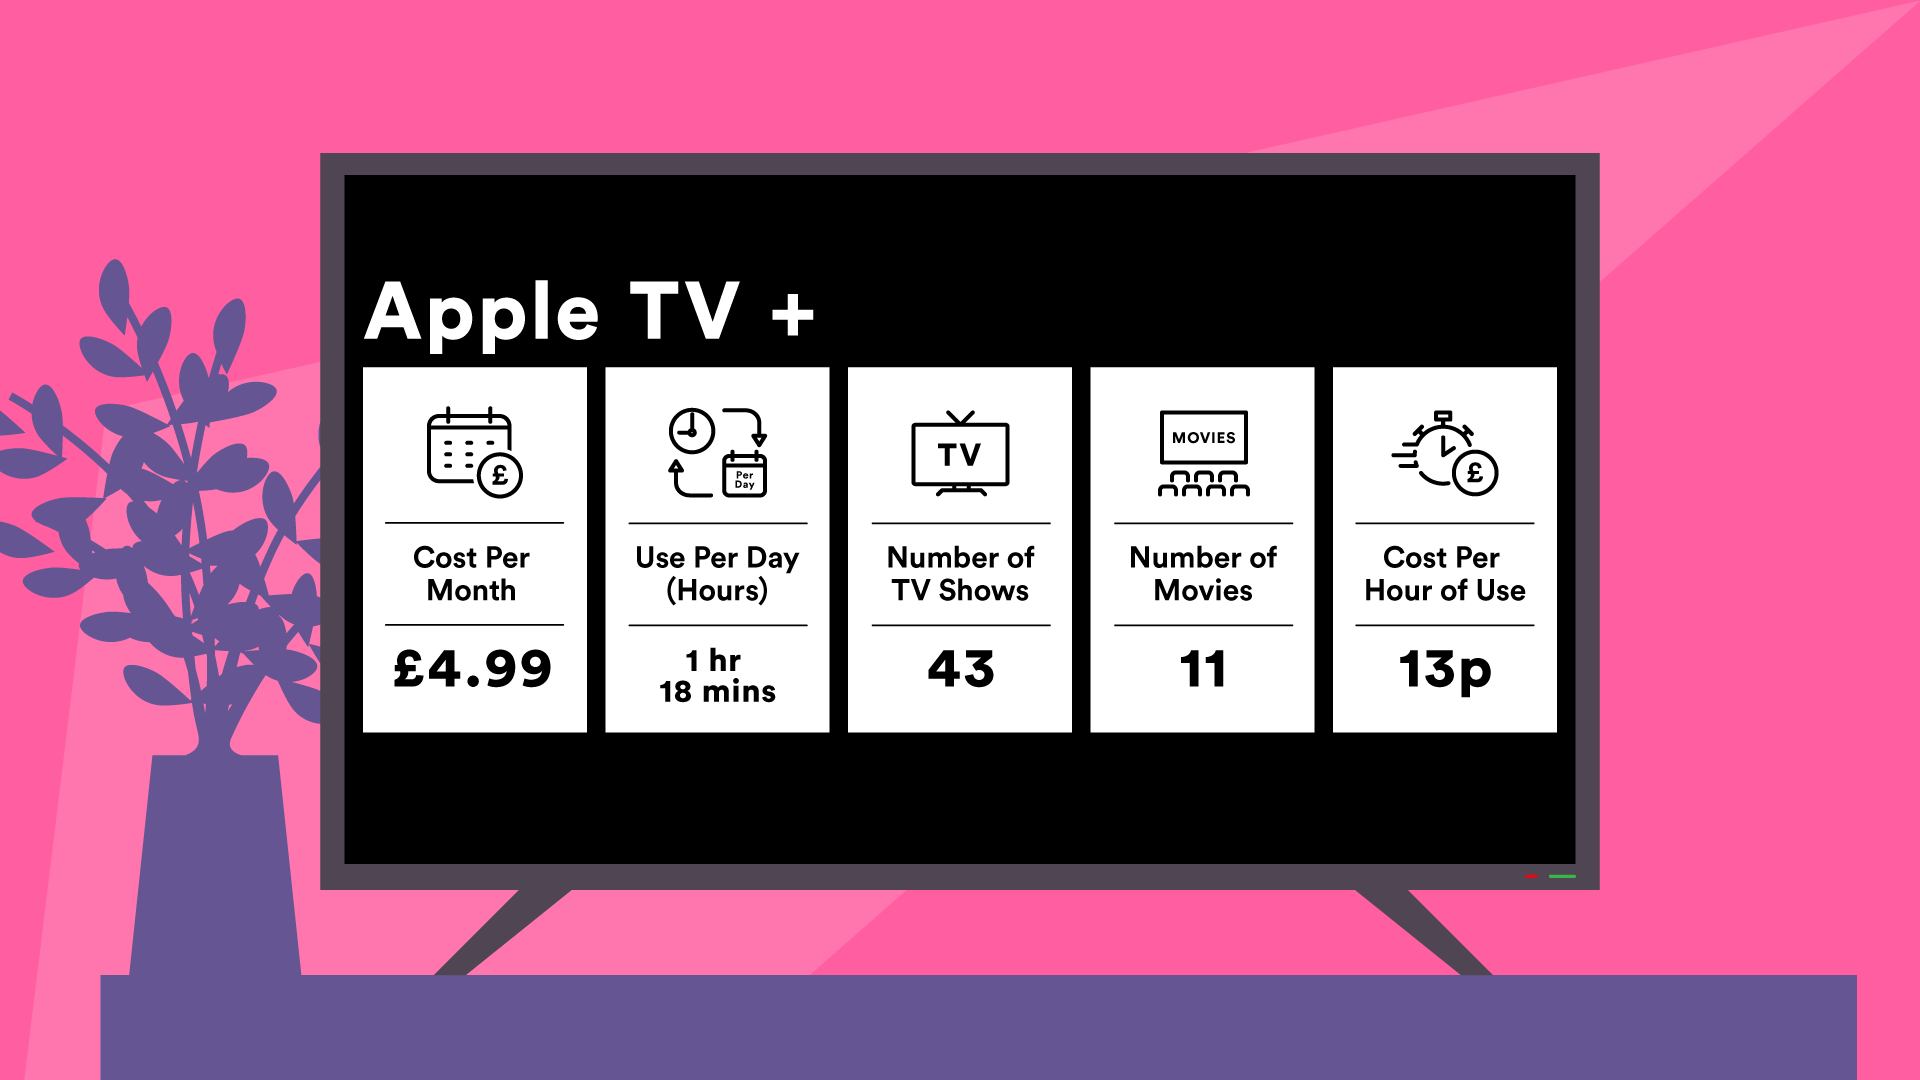 Apple TV costs